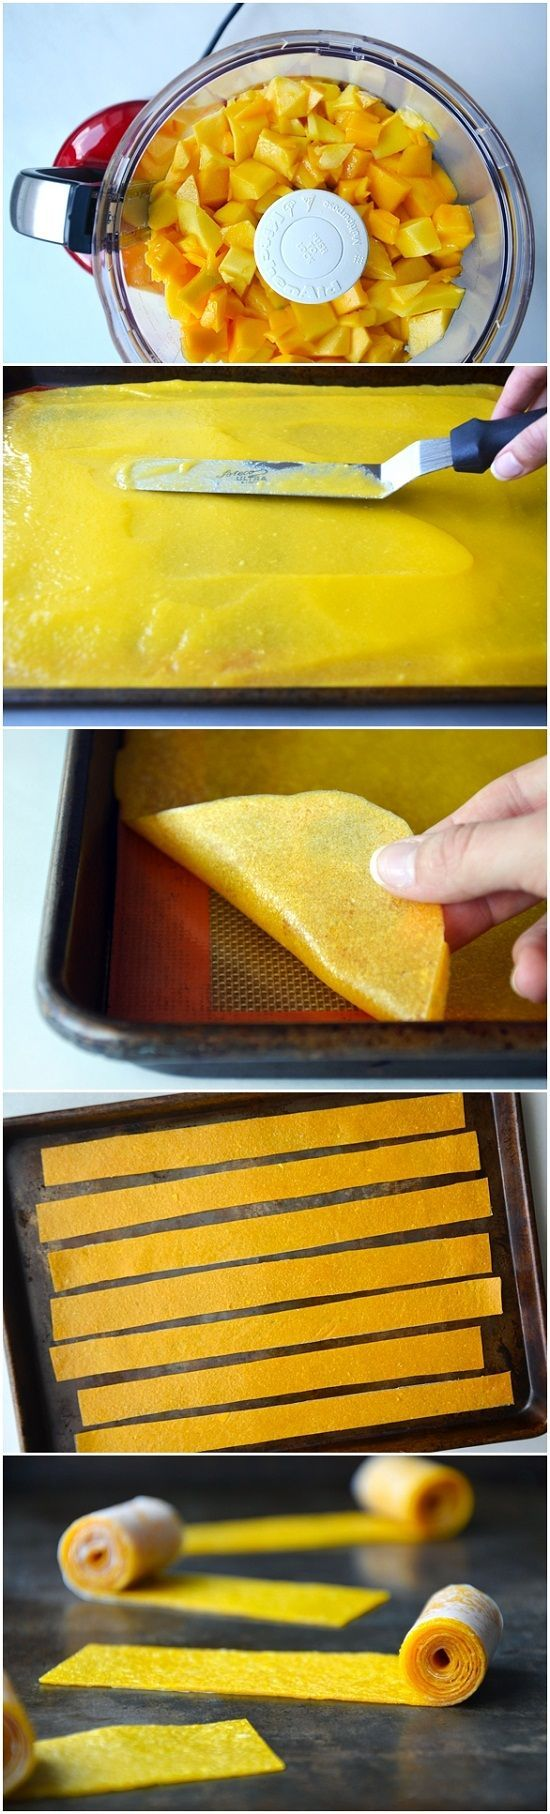 mango fruit roll-ups: Puree the mango , spread, bake 3-4 hours at 175ºF  till done  flip the roll-ups over and continue baking when dry to the touch and pliable,